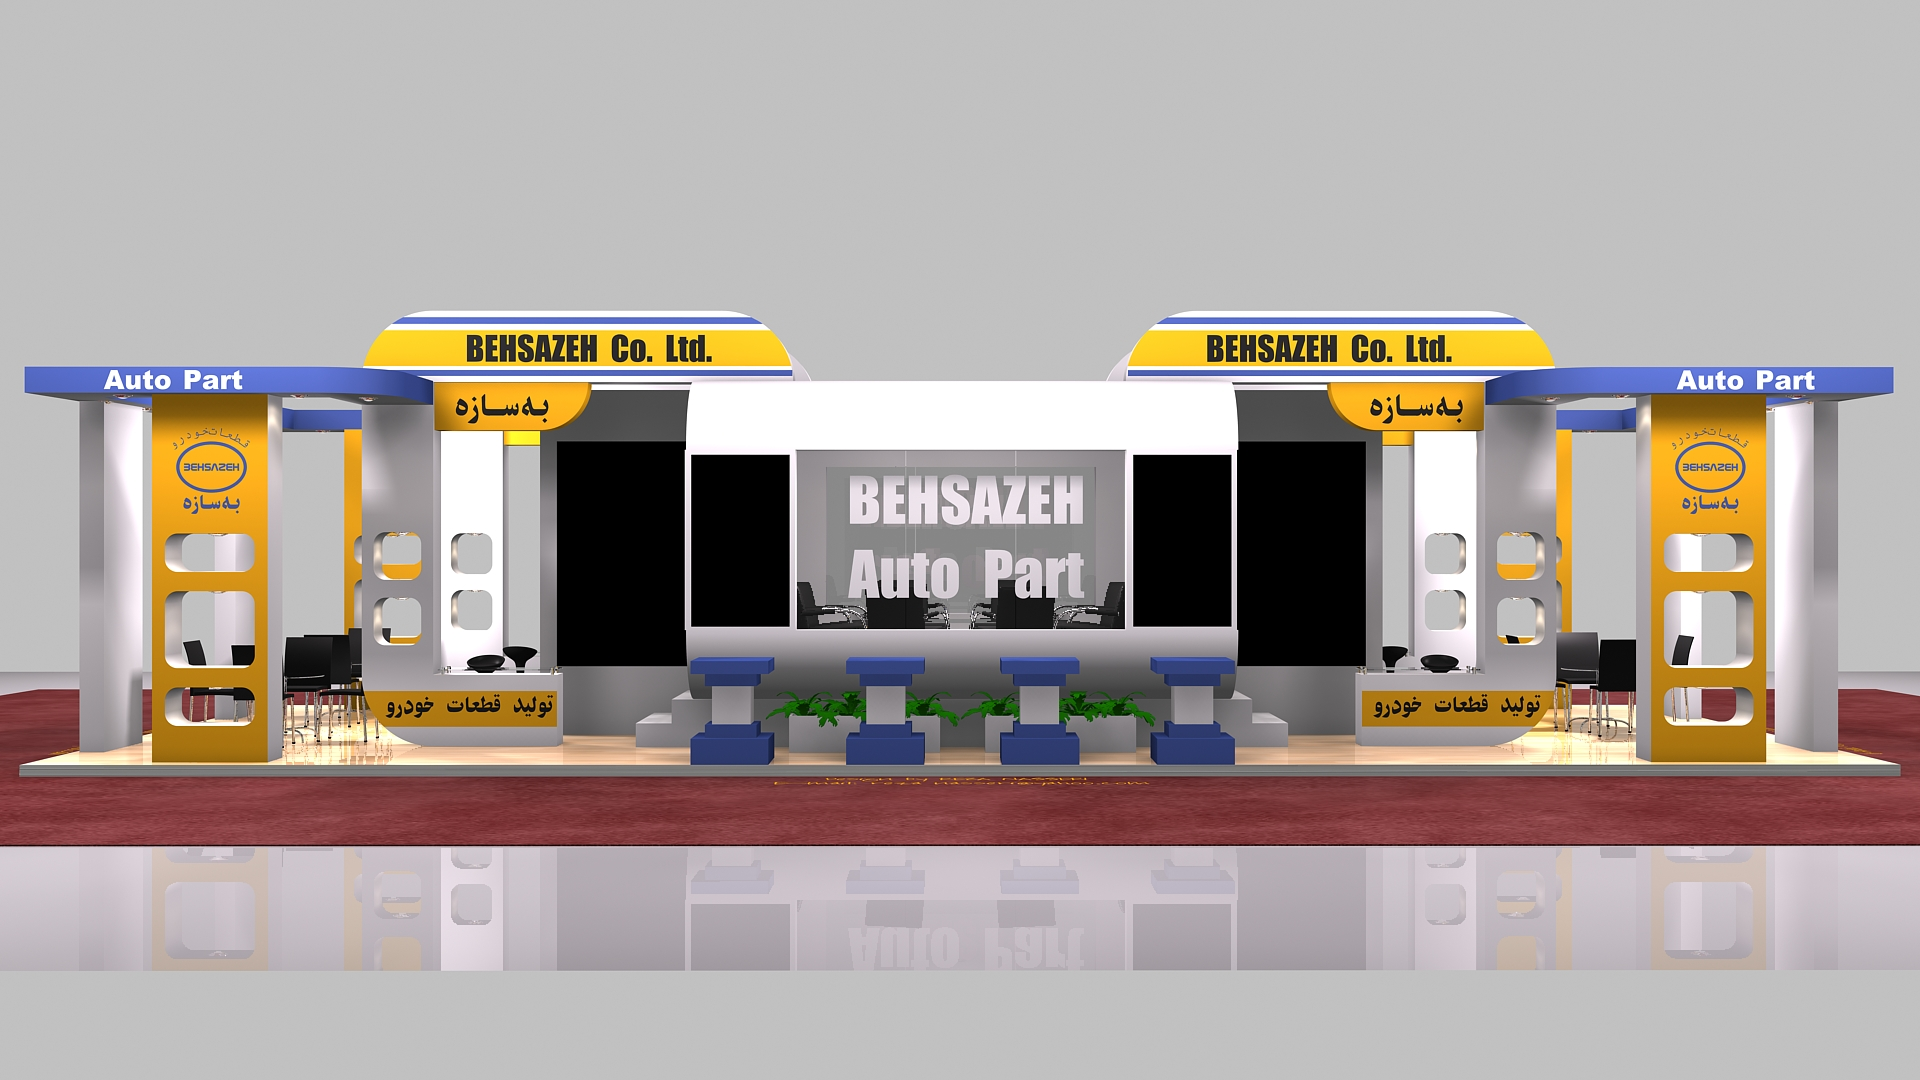 Exhibition Stall Vector Free Download : Behsazeh exhibition stall design by reza nas